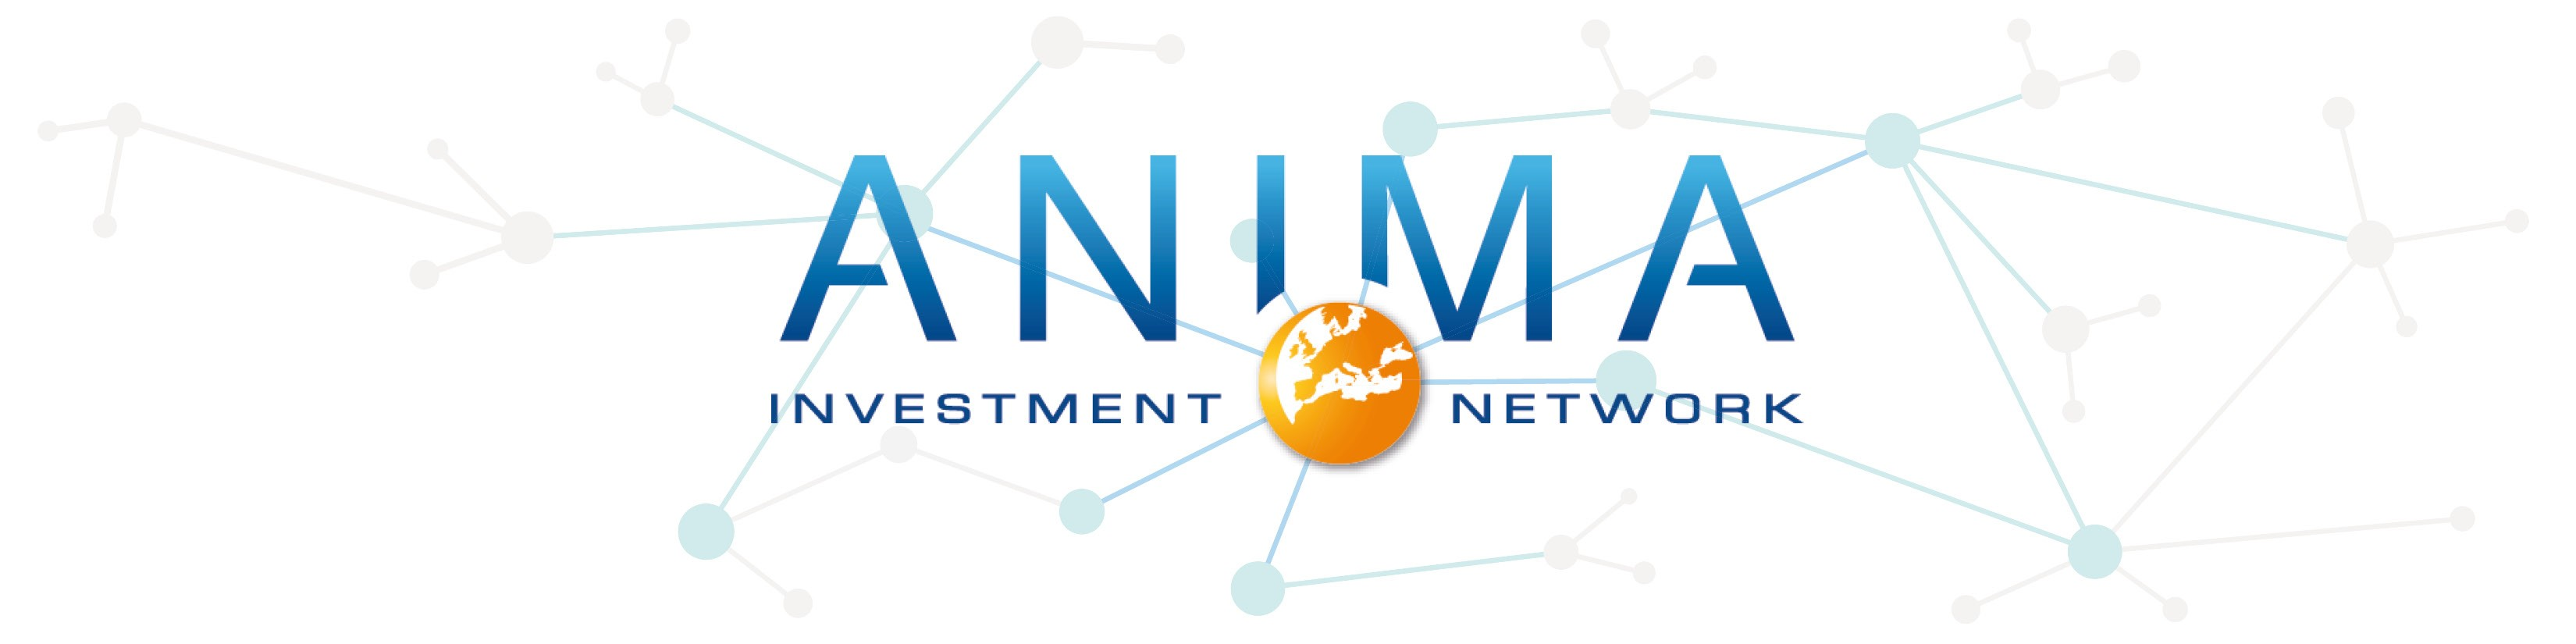 ANIMA Investment Network | LinkedIn